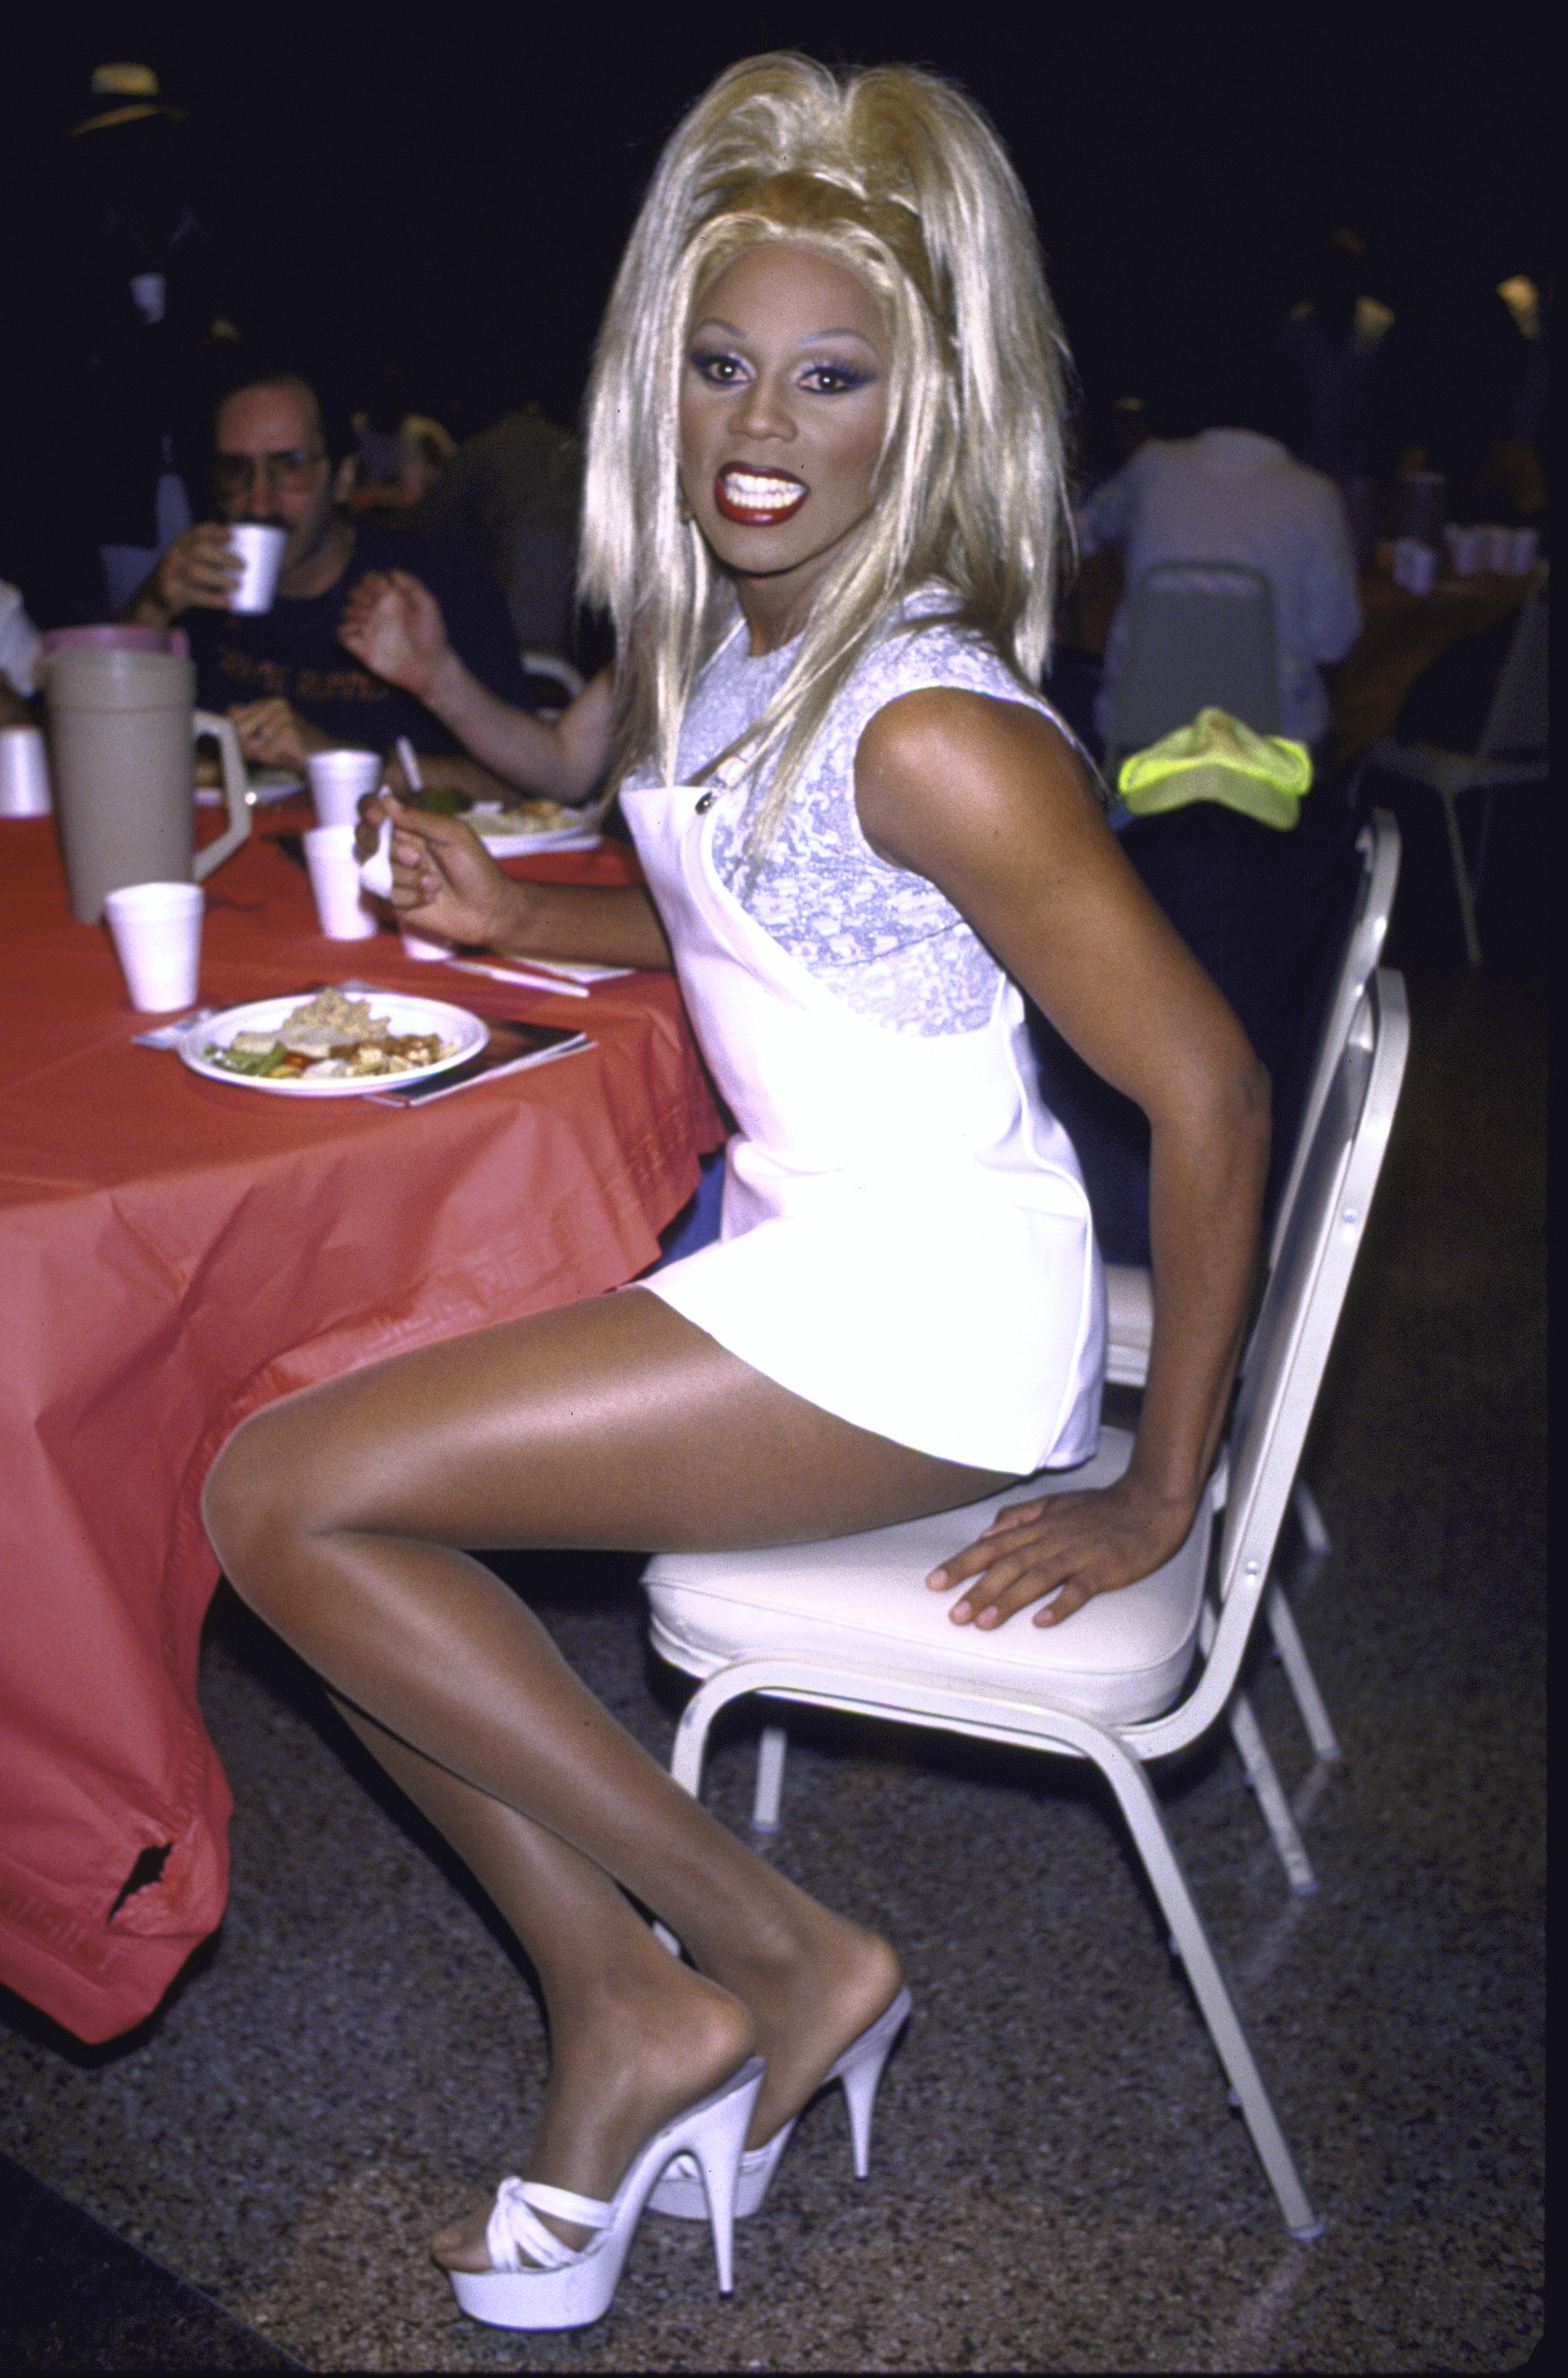 A young RuPaul posing for a photo as she eats at an event